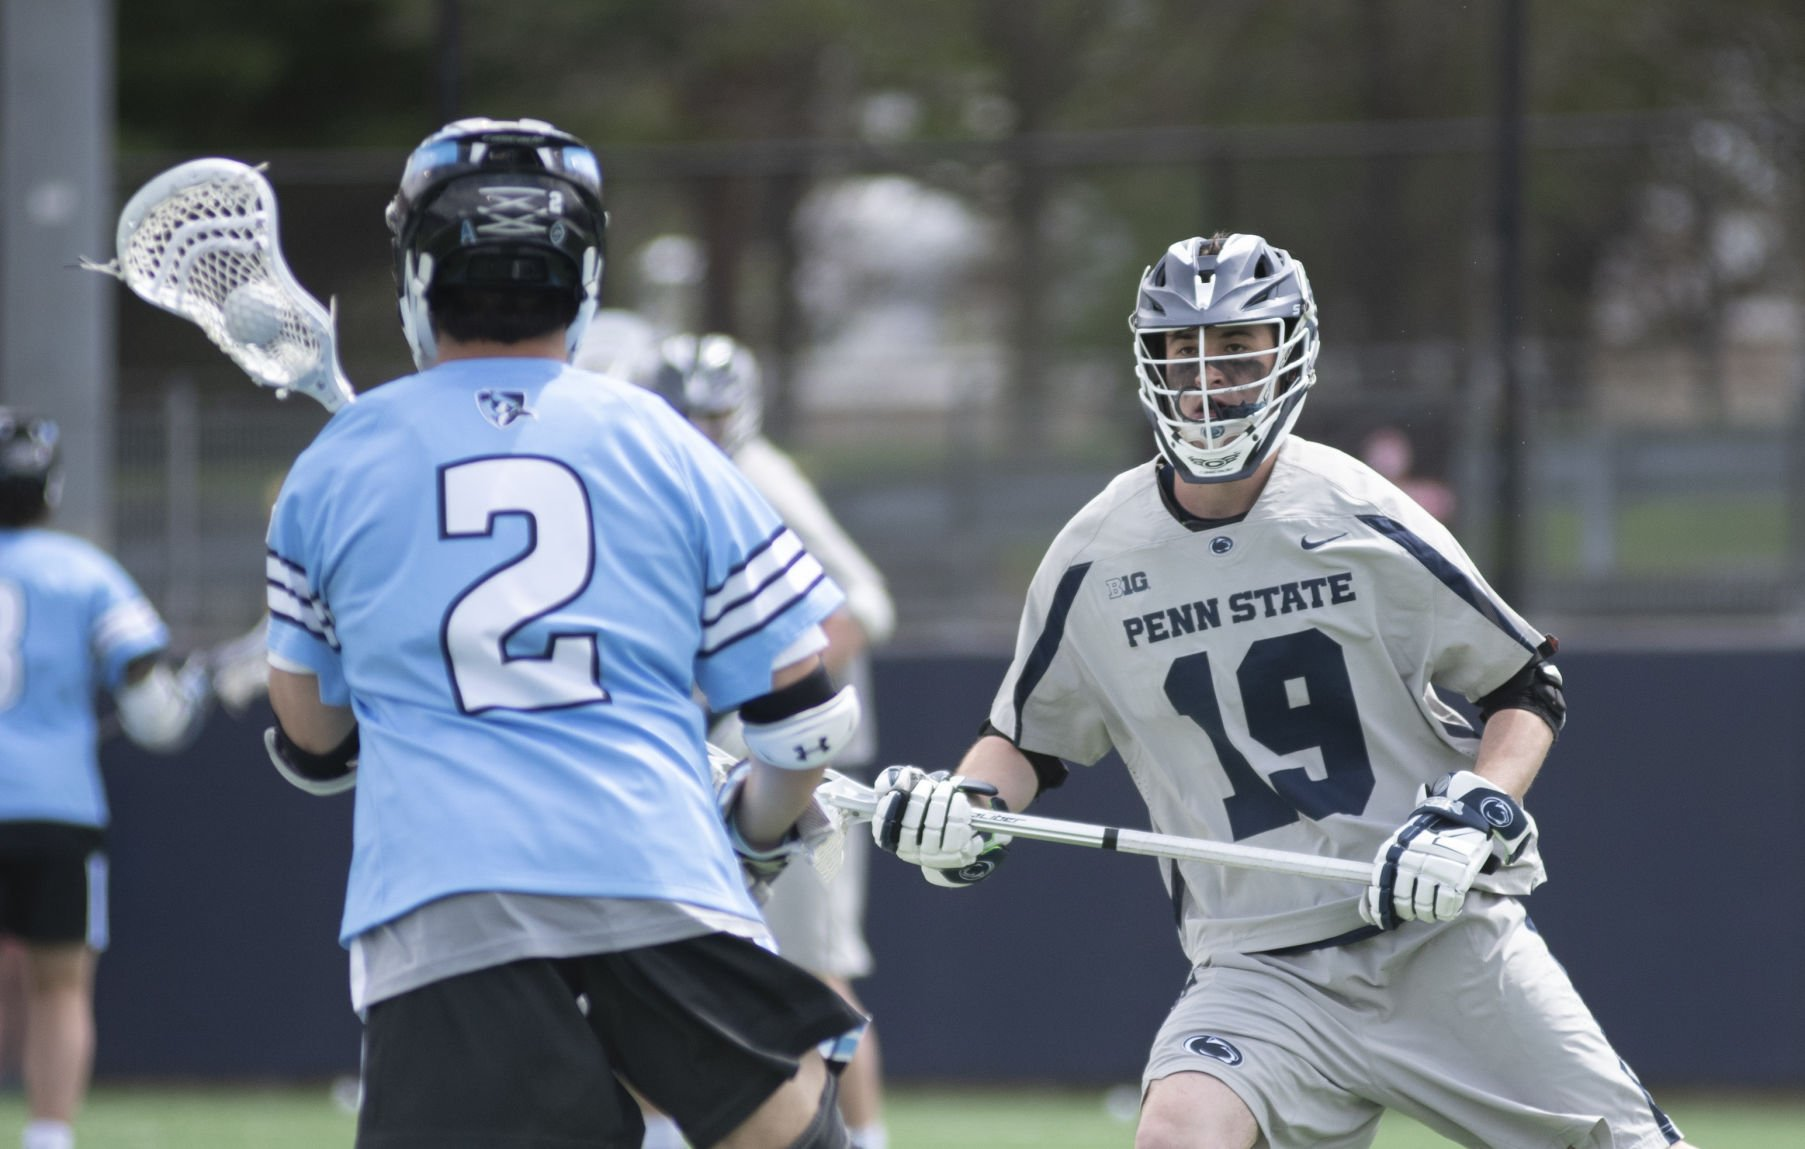 Penn State men's lacrosse announces recipients of No. 11 and No ...